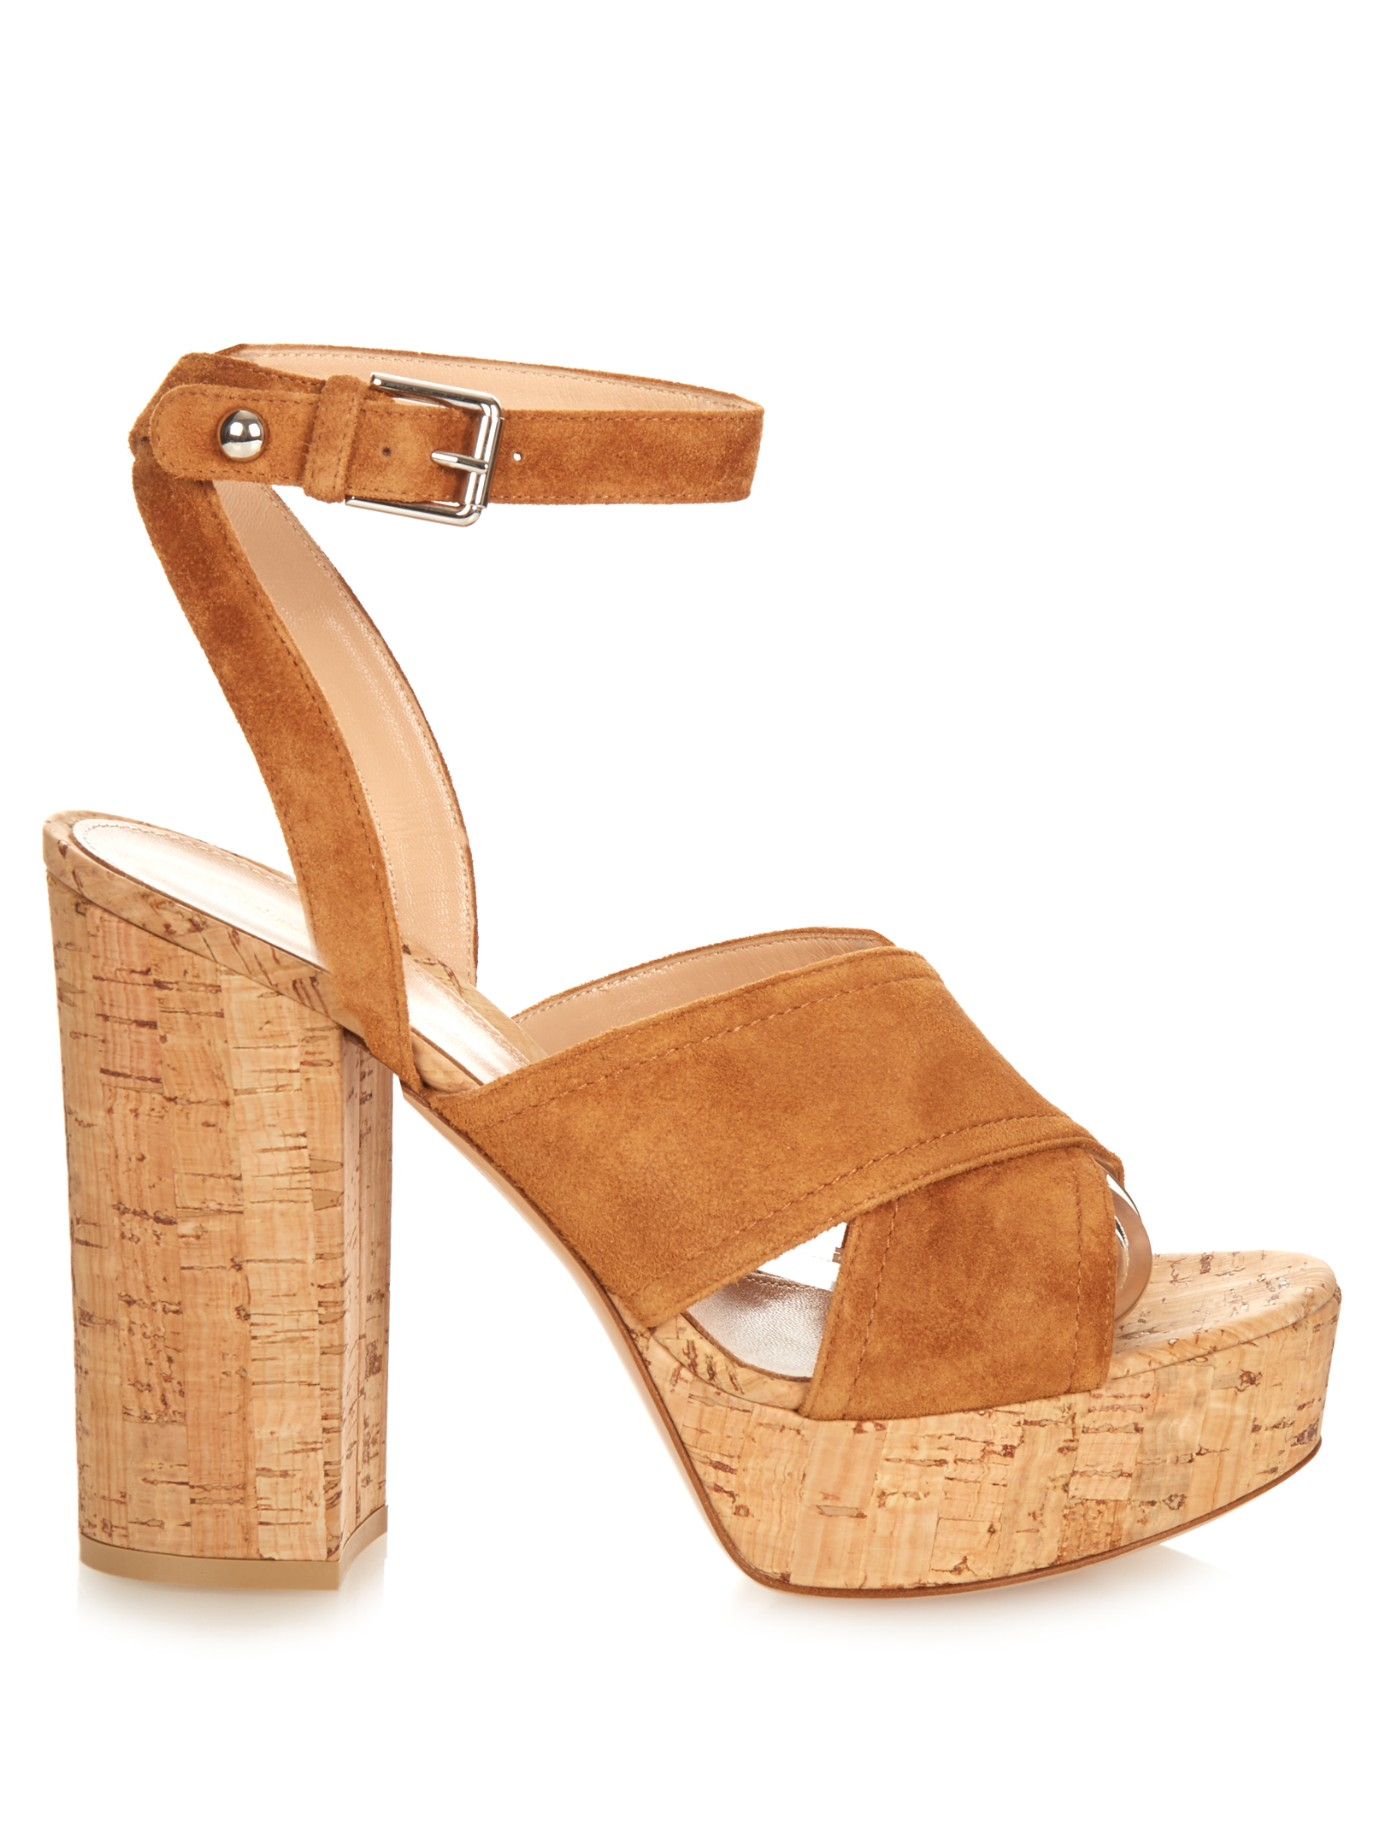 Discount Buy Gianvito Rossi Mytheresa.com exclusive Suzie suede platform sandals Discounts For Sale Latest Collections Online mPDU1JCbN